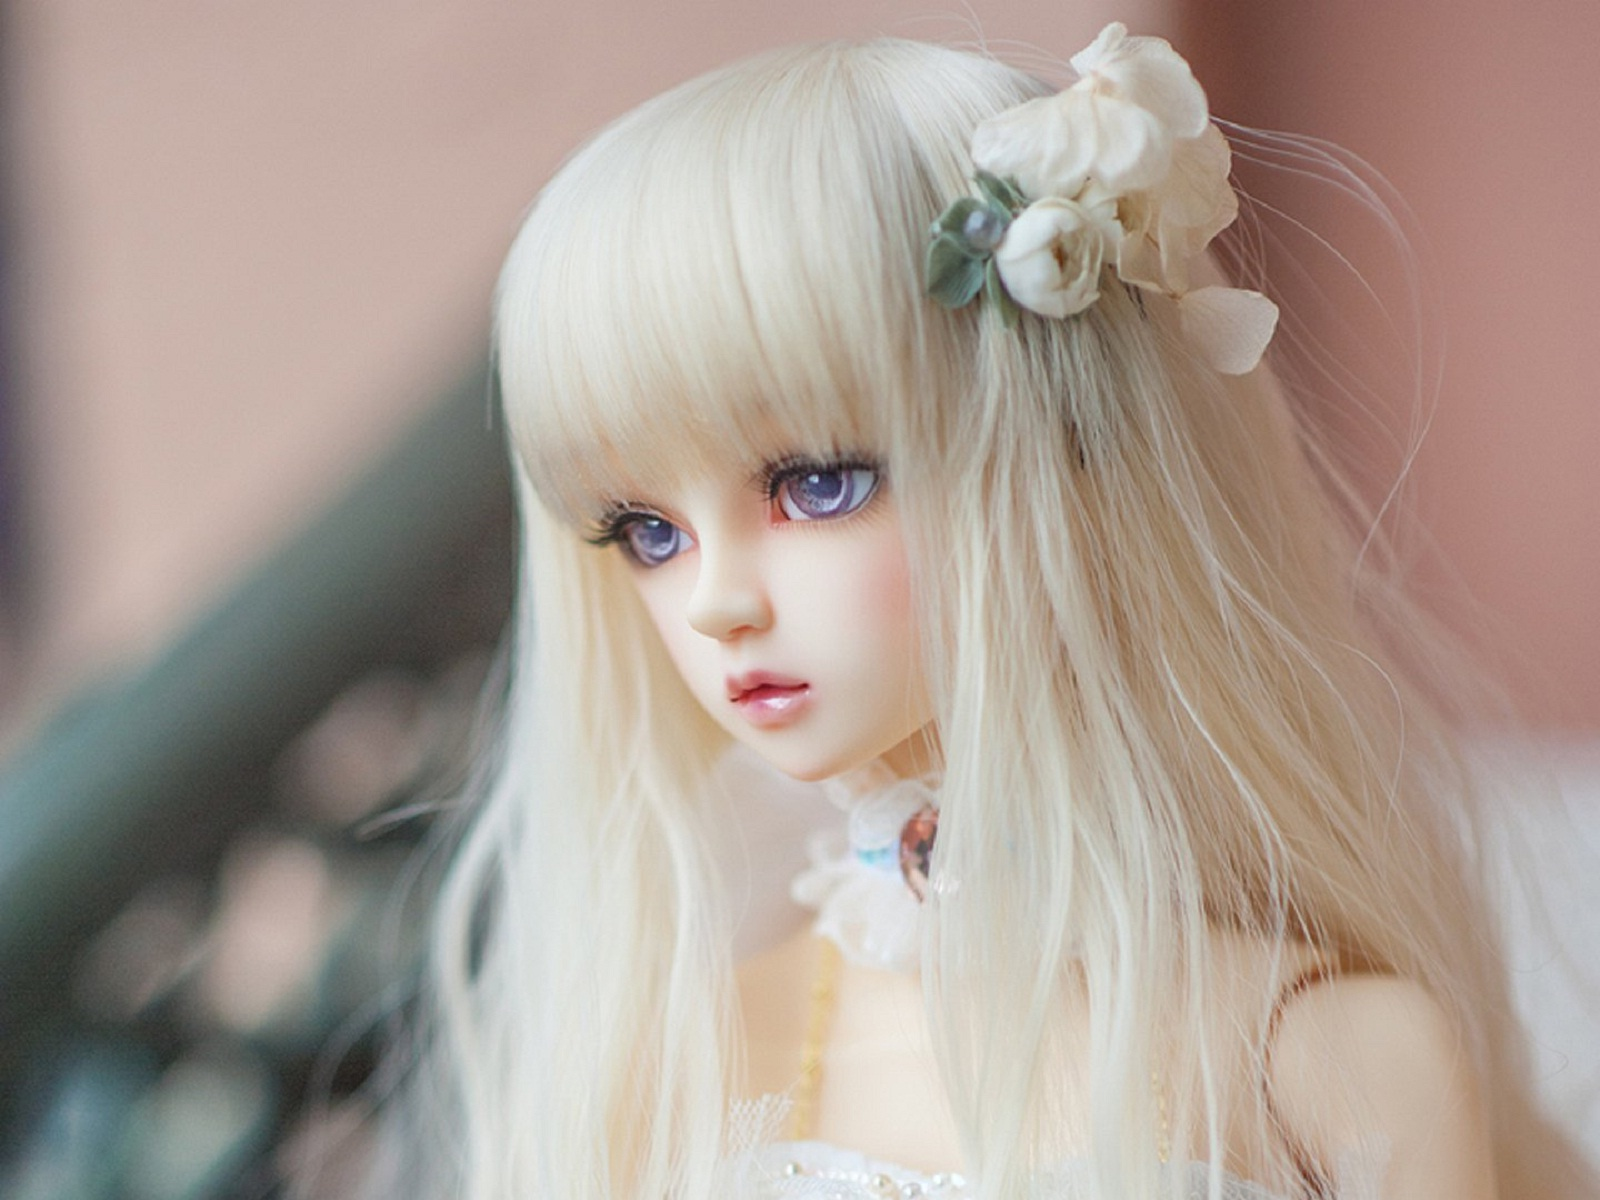 Barbie Doll Hd Wallpapers Image Wallpapers 1600x1200